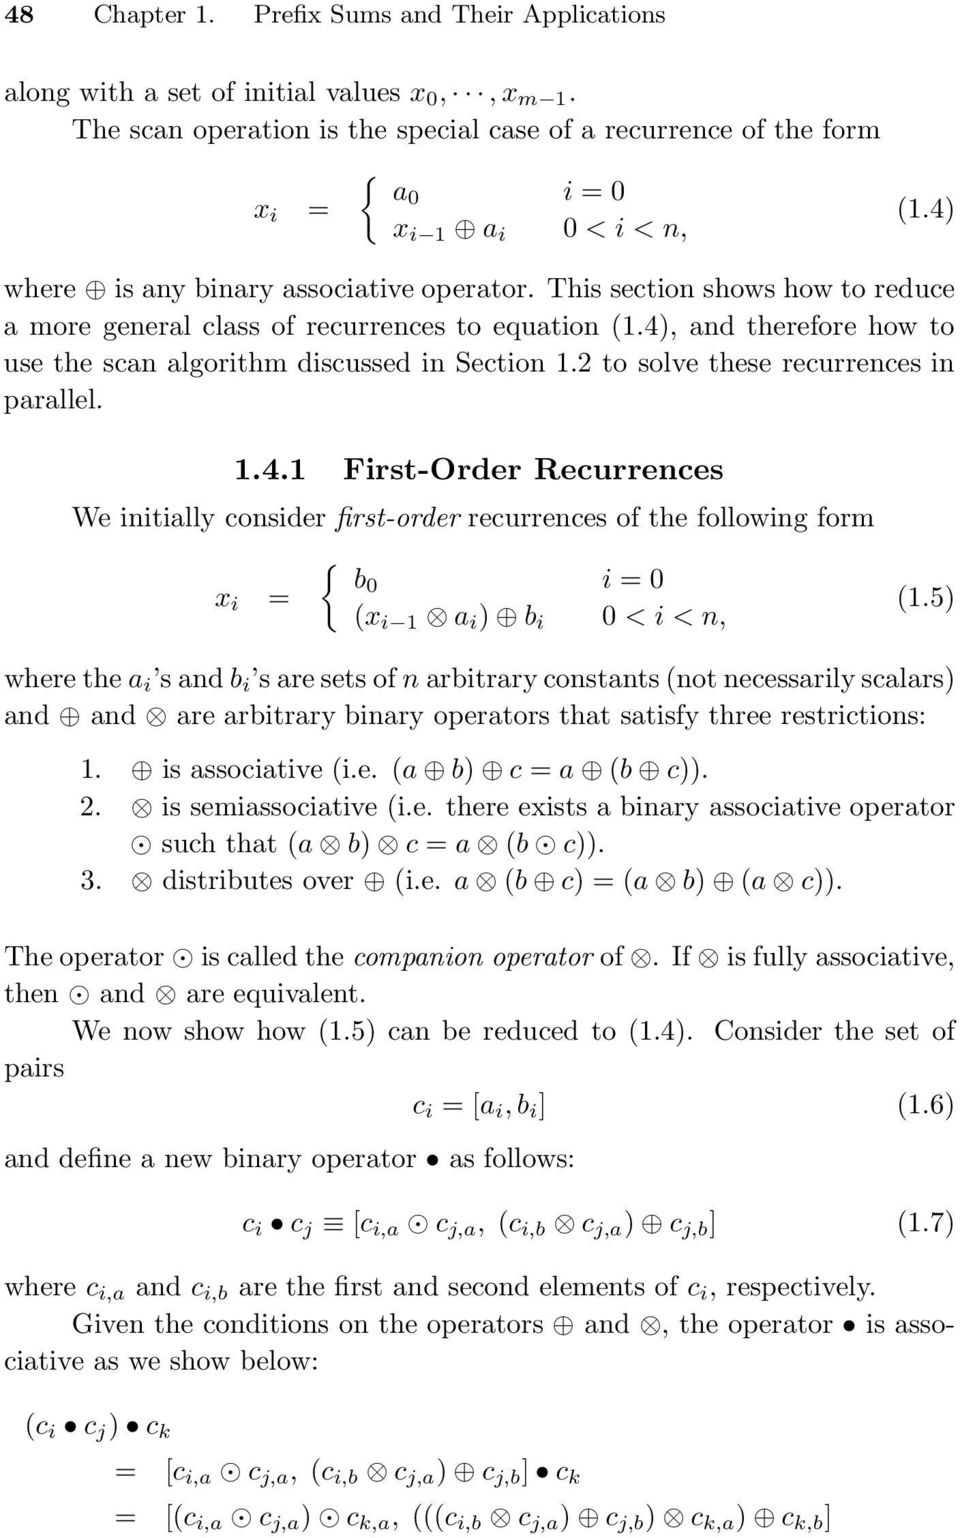 This section shows how to reduce a more general class of recurrences to equation (1.4)